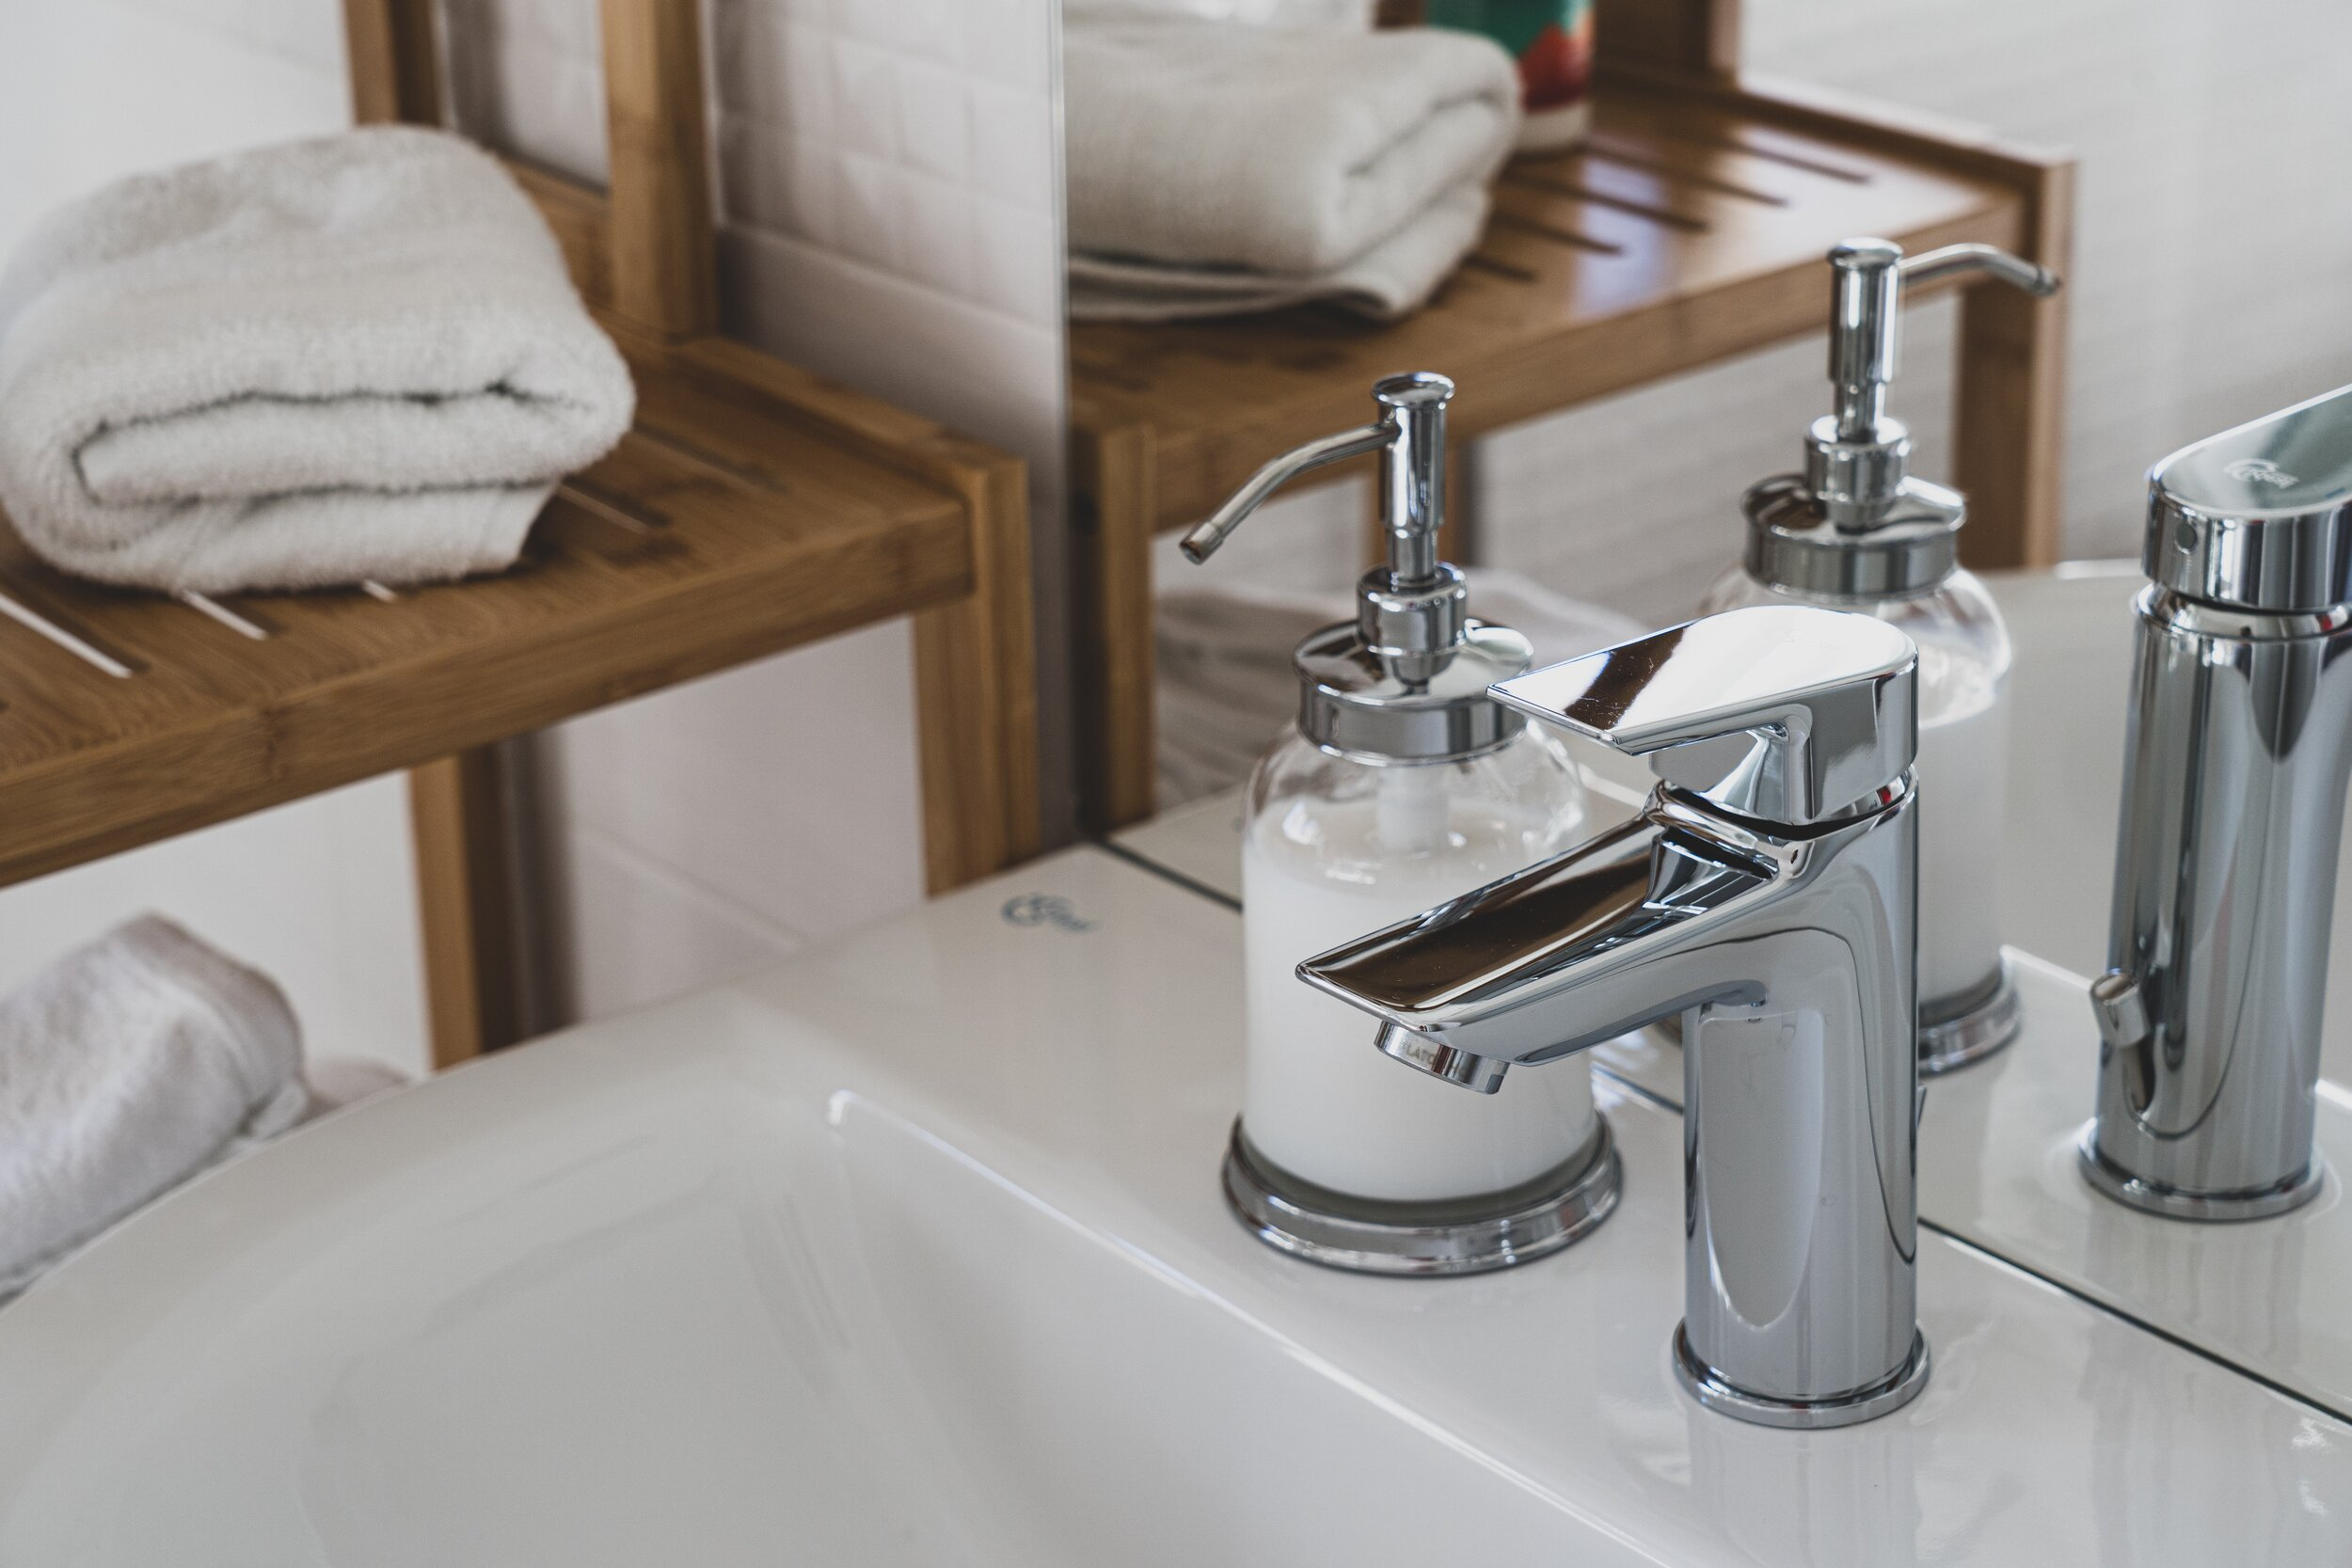 Affordable Faucet Repair Services in Chicago   Faucet Replacement ...